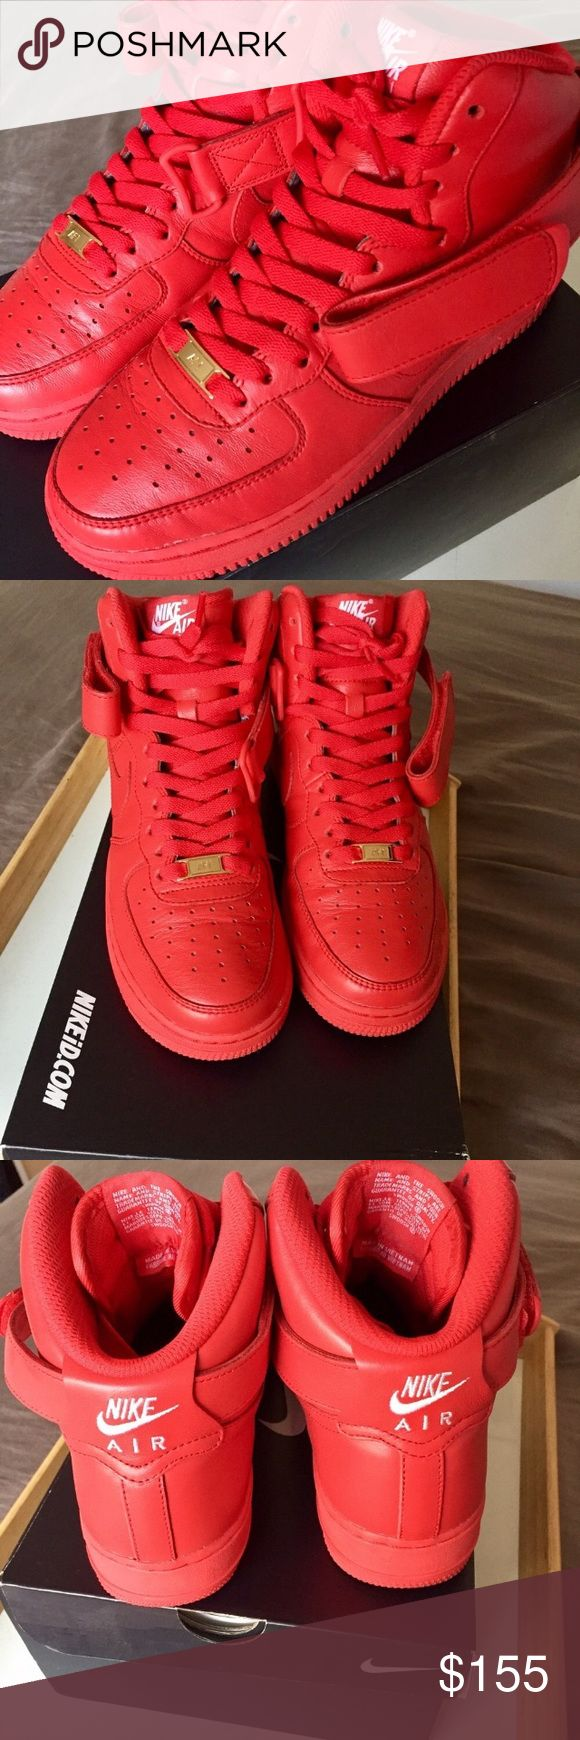 Air Force 1s HIGH (RED Nike IDs) Air Force 1s (Unisex) Light wear. WORN LESS THAN 10xs Size: 6 (Grade School) youth  Color: Red 100% Leather  Leather Straps Red Everything / Gold plated AF1 tabs   These are Nike IDs (customs) straight from the factory. This is not paint!!!!   Regular price $220  NO HOLDS. NO TRADES.    LOWBALLERS DO NOT COMMENT Nike Shoes Sneakers